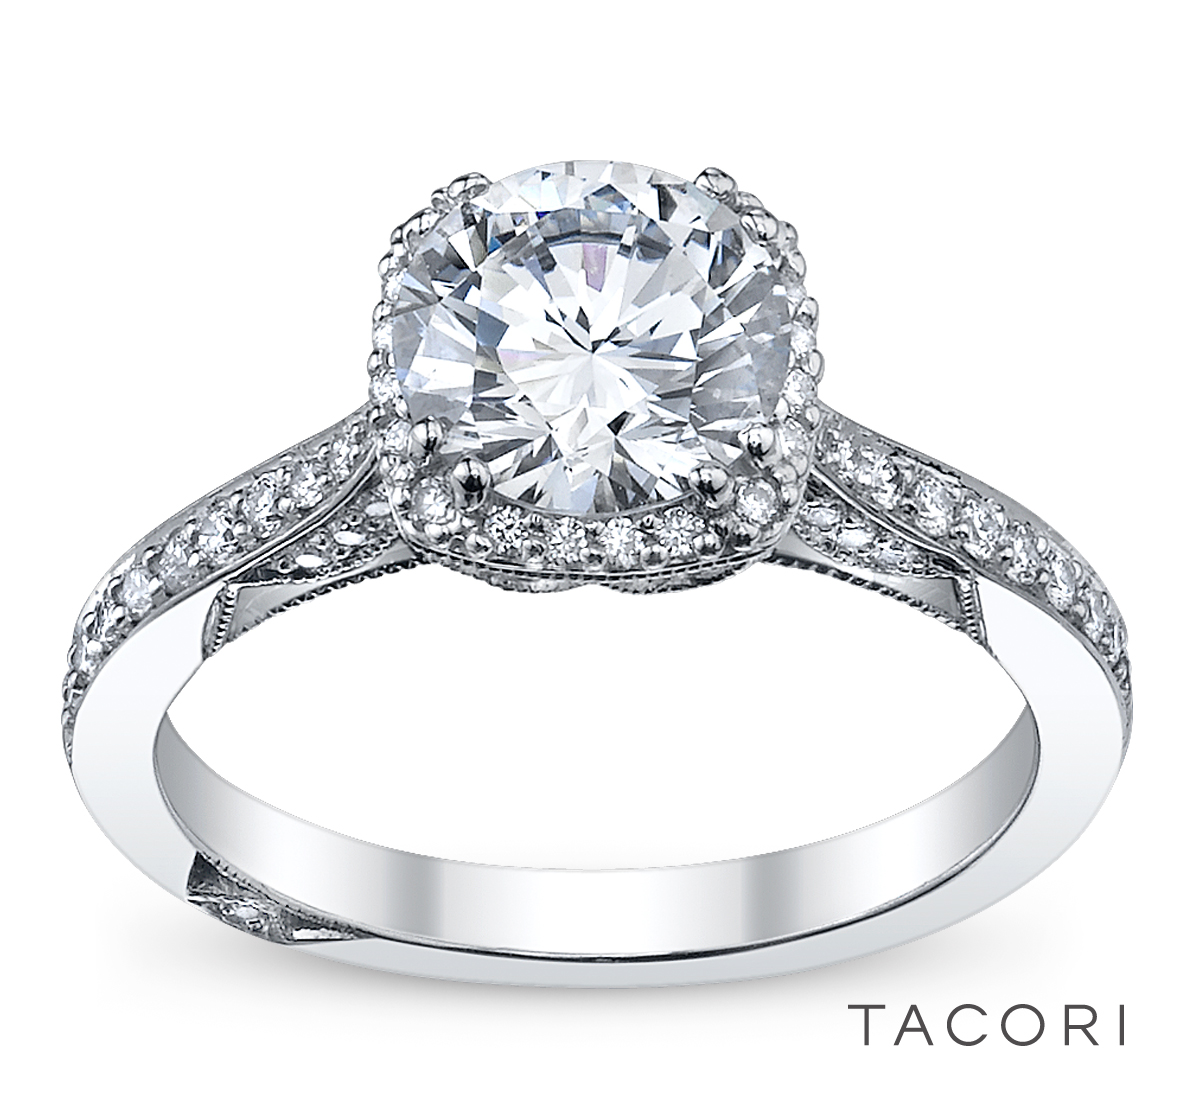 artistry tacori engagement ring tacori wedding band Can I Afford a Tacori Engagement Ring